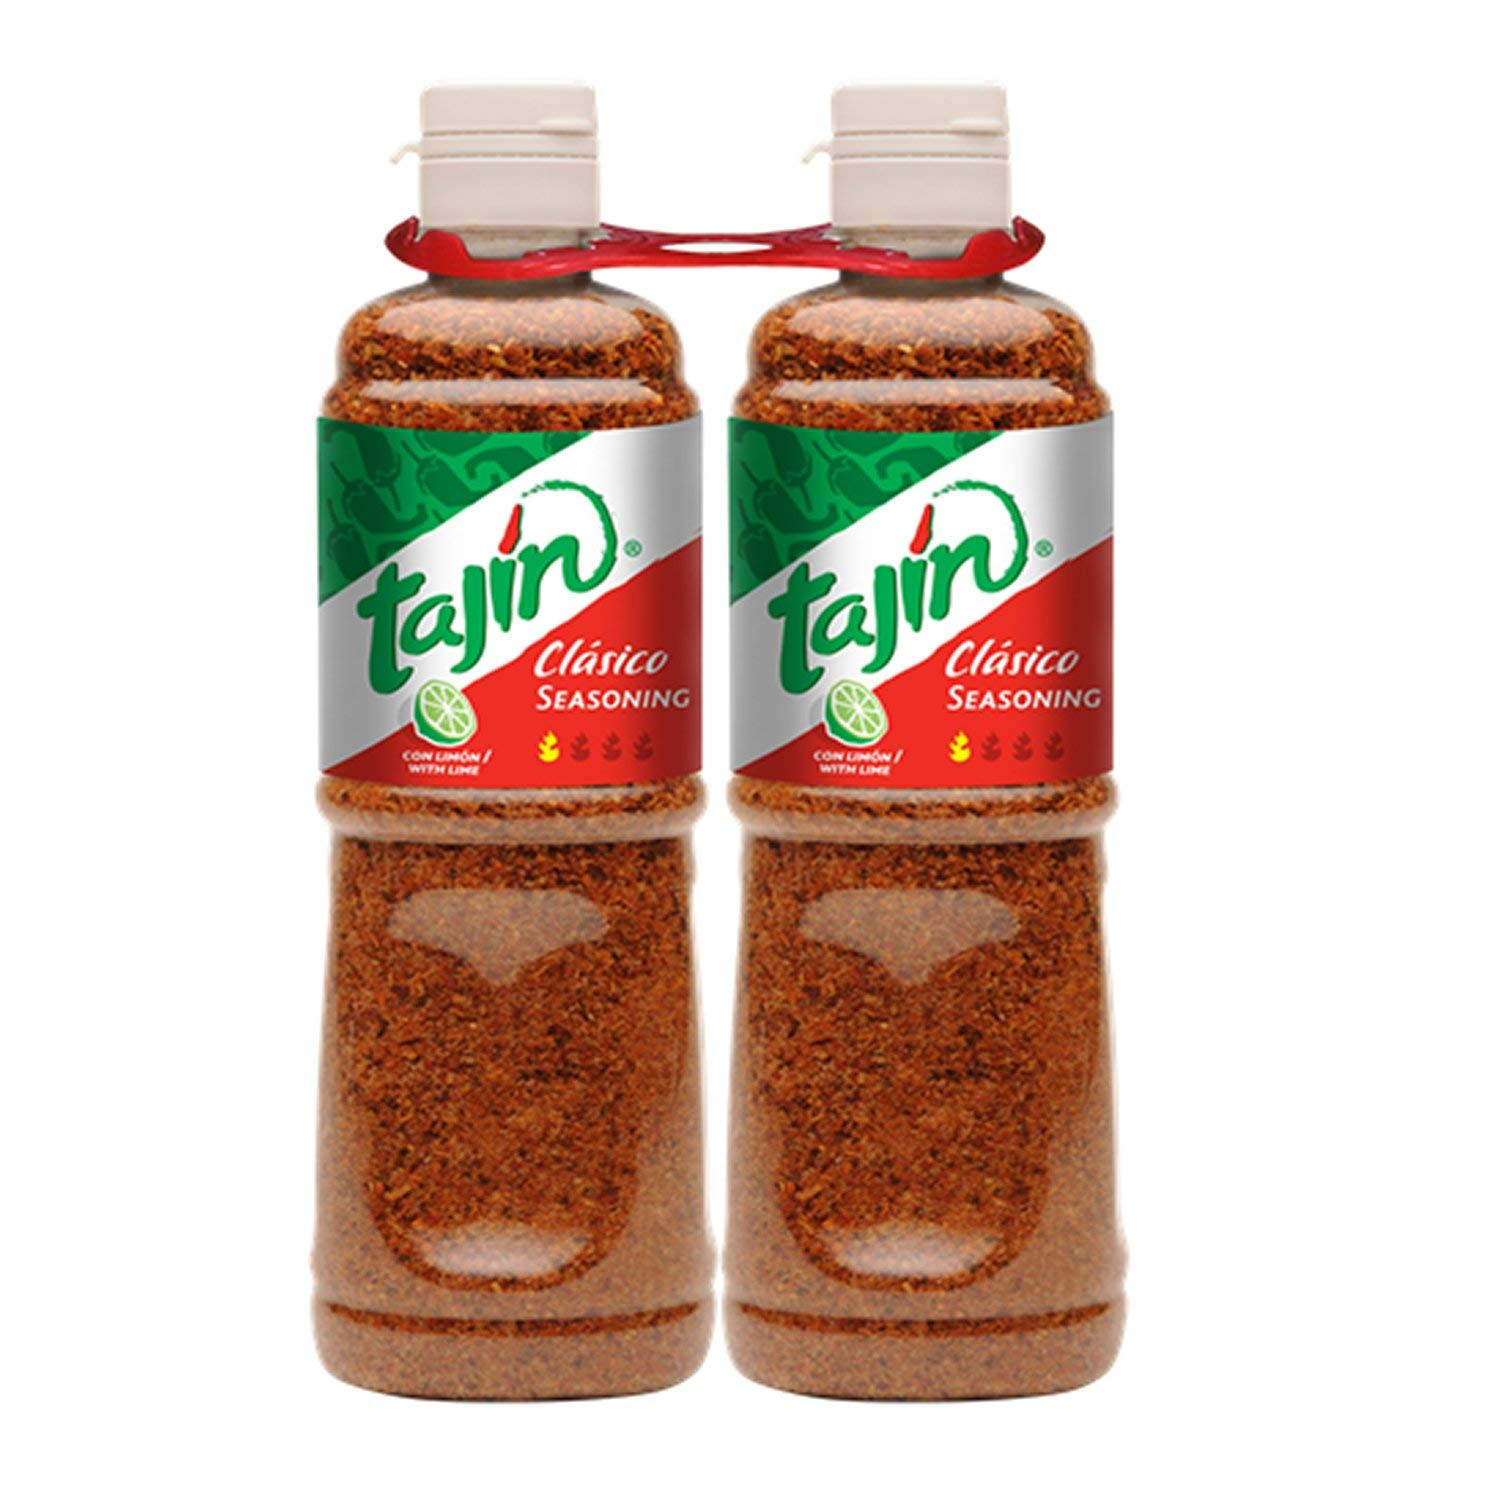 Tajín Clásico Seasoning 14 oz (pack of 2)